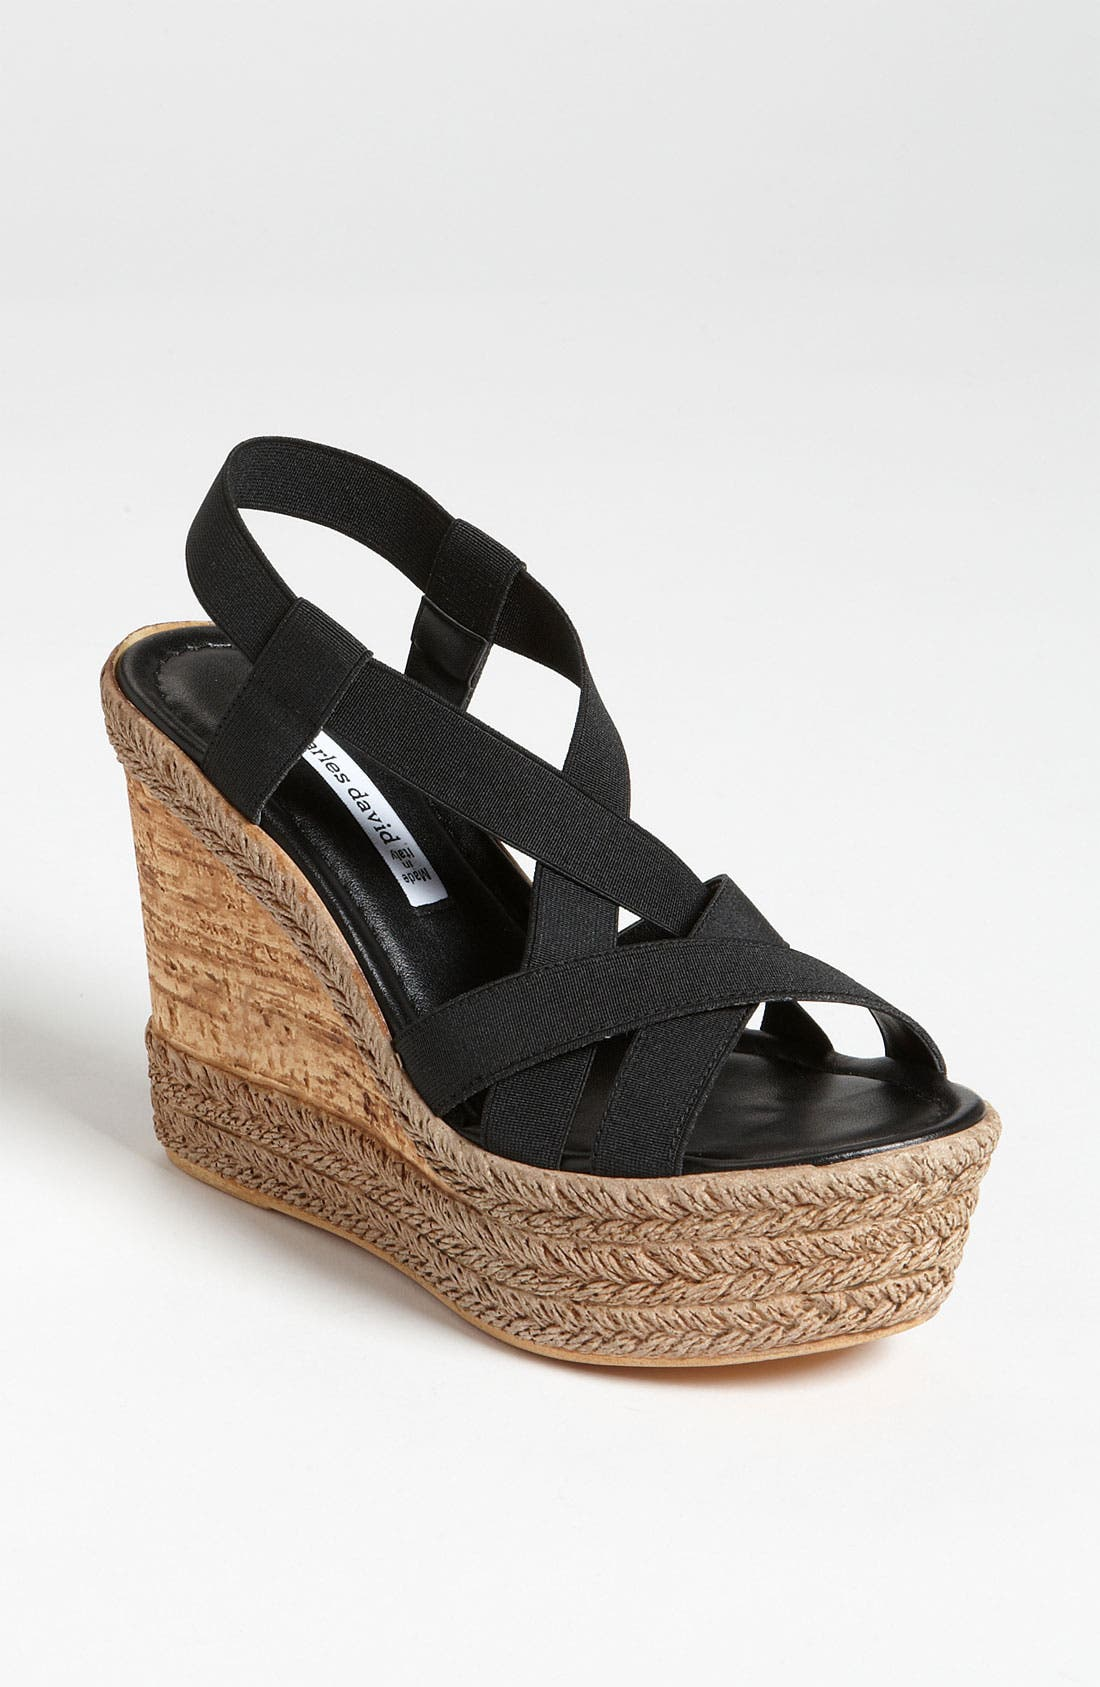 Alternate Image 1 Selected - Charles David 'Fare' Espadrille Wedge